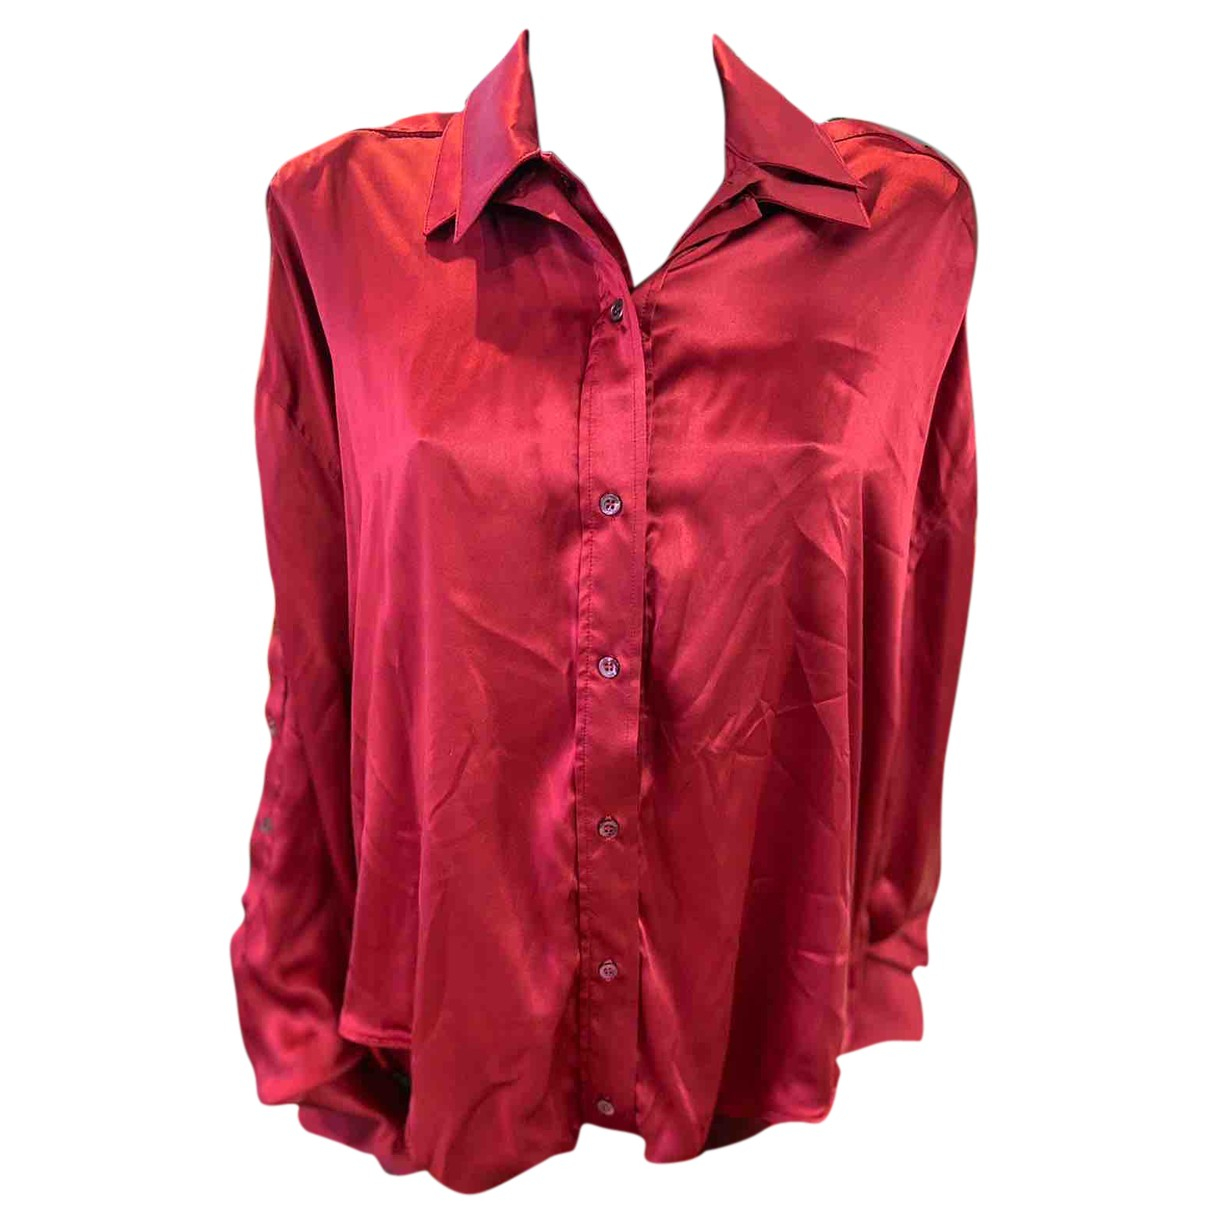 Y/project N Red Silk  top for Women XS International